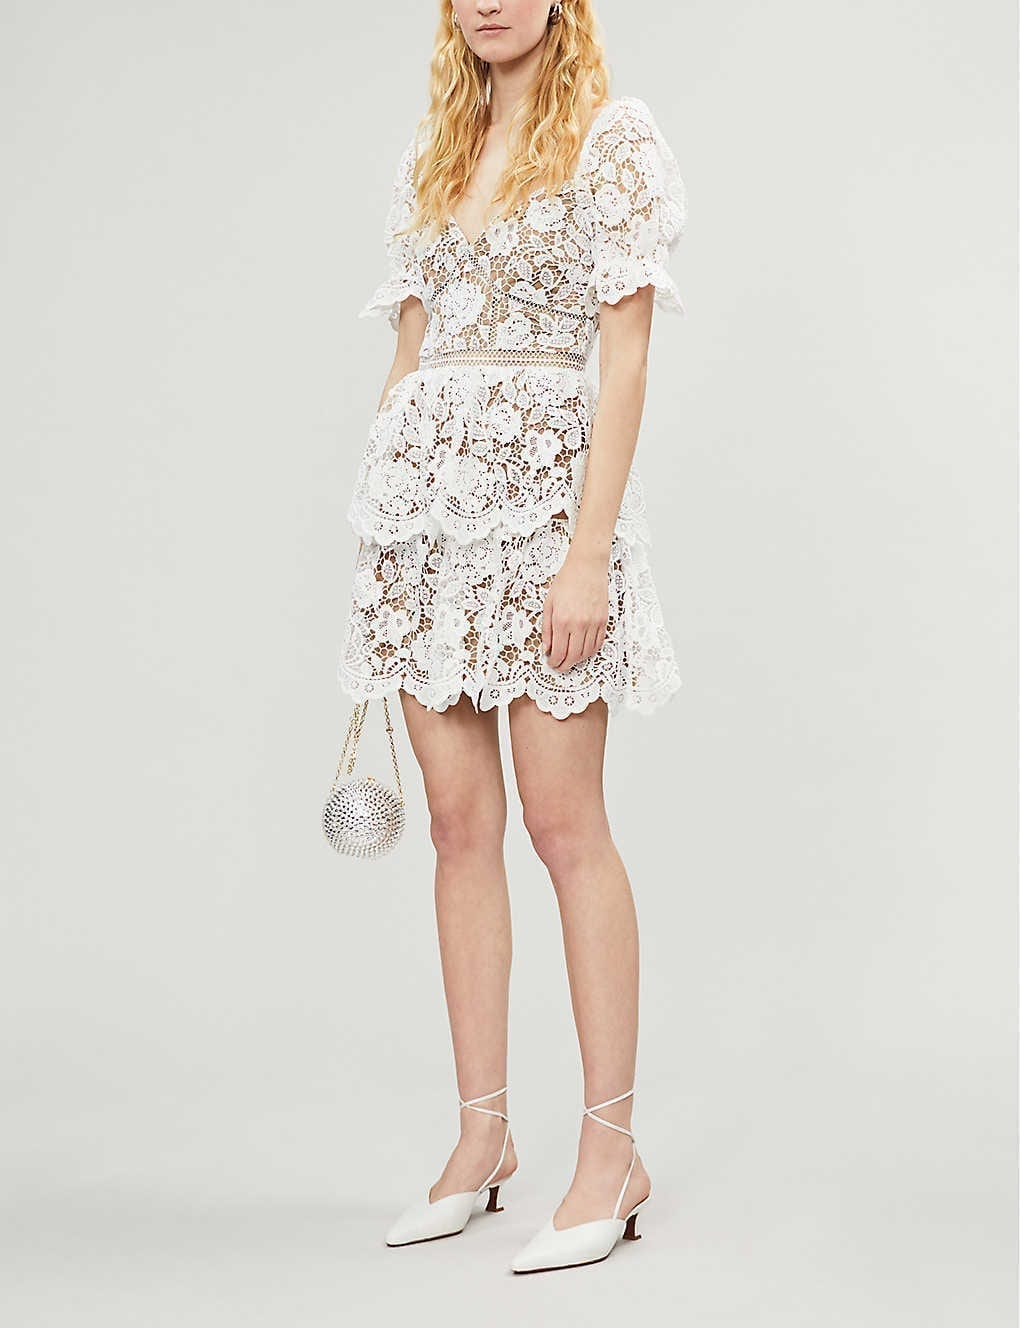 SELF-PORTRAIT Floral Guipure Lace Mini Dress